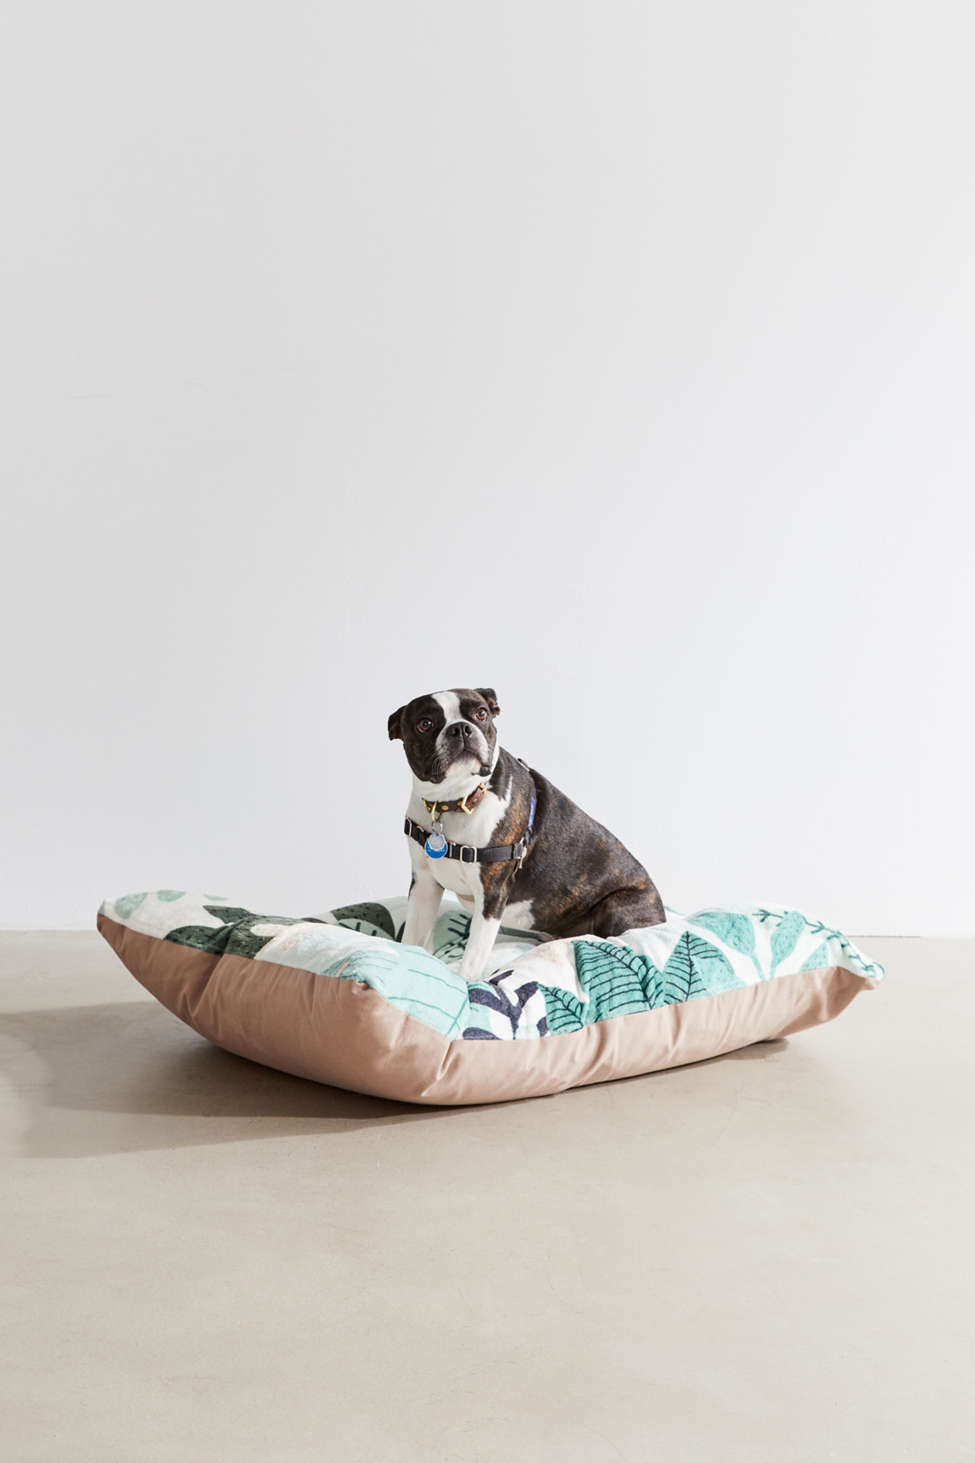 Slide View: 1: Gale Switzer For Deny Into The Jungle II Pet Bed